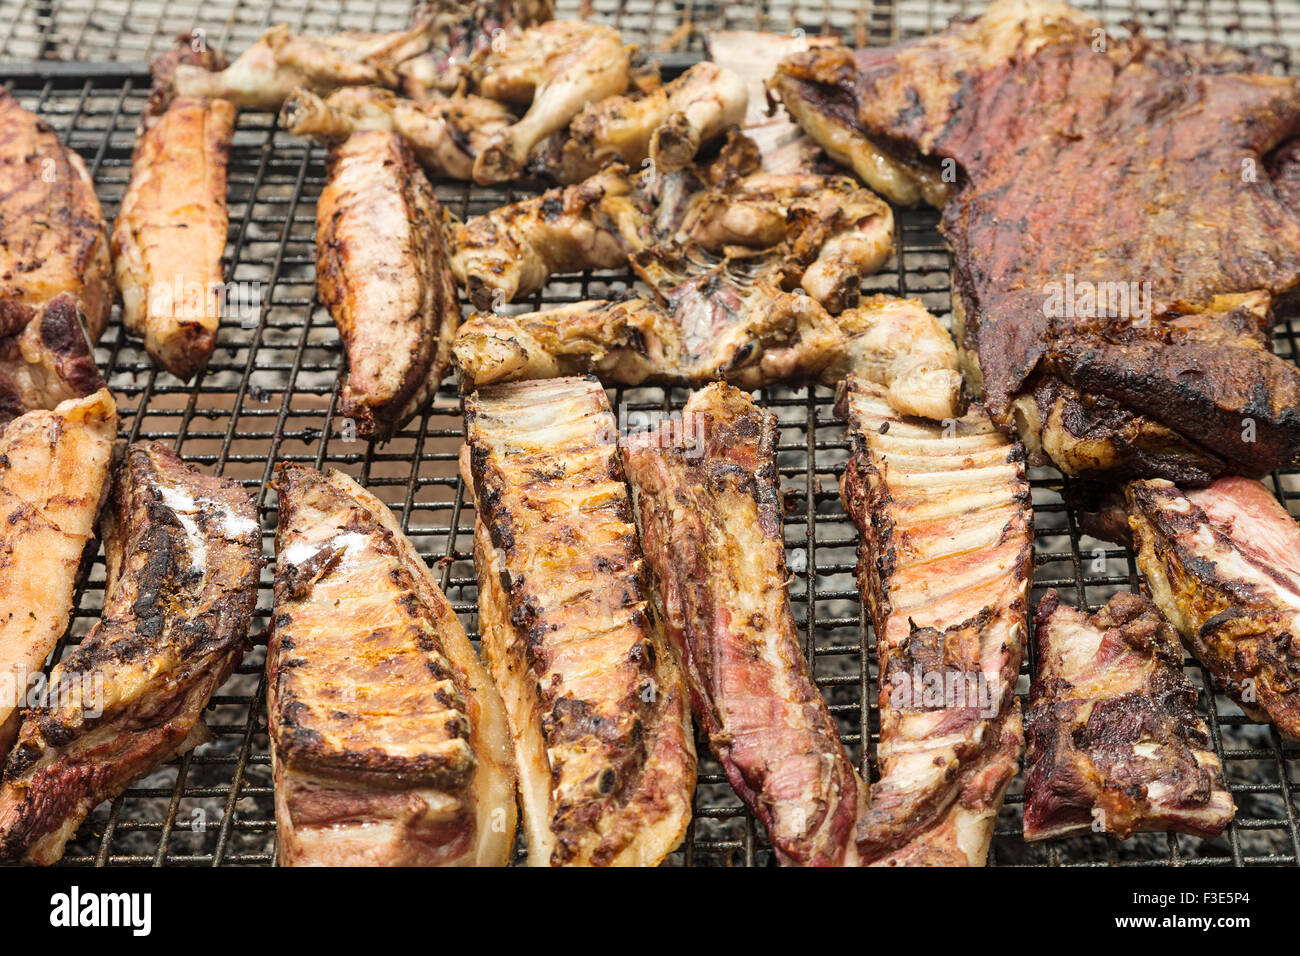 Barbecue of beef steak traditional Argentine style - Stock Image